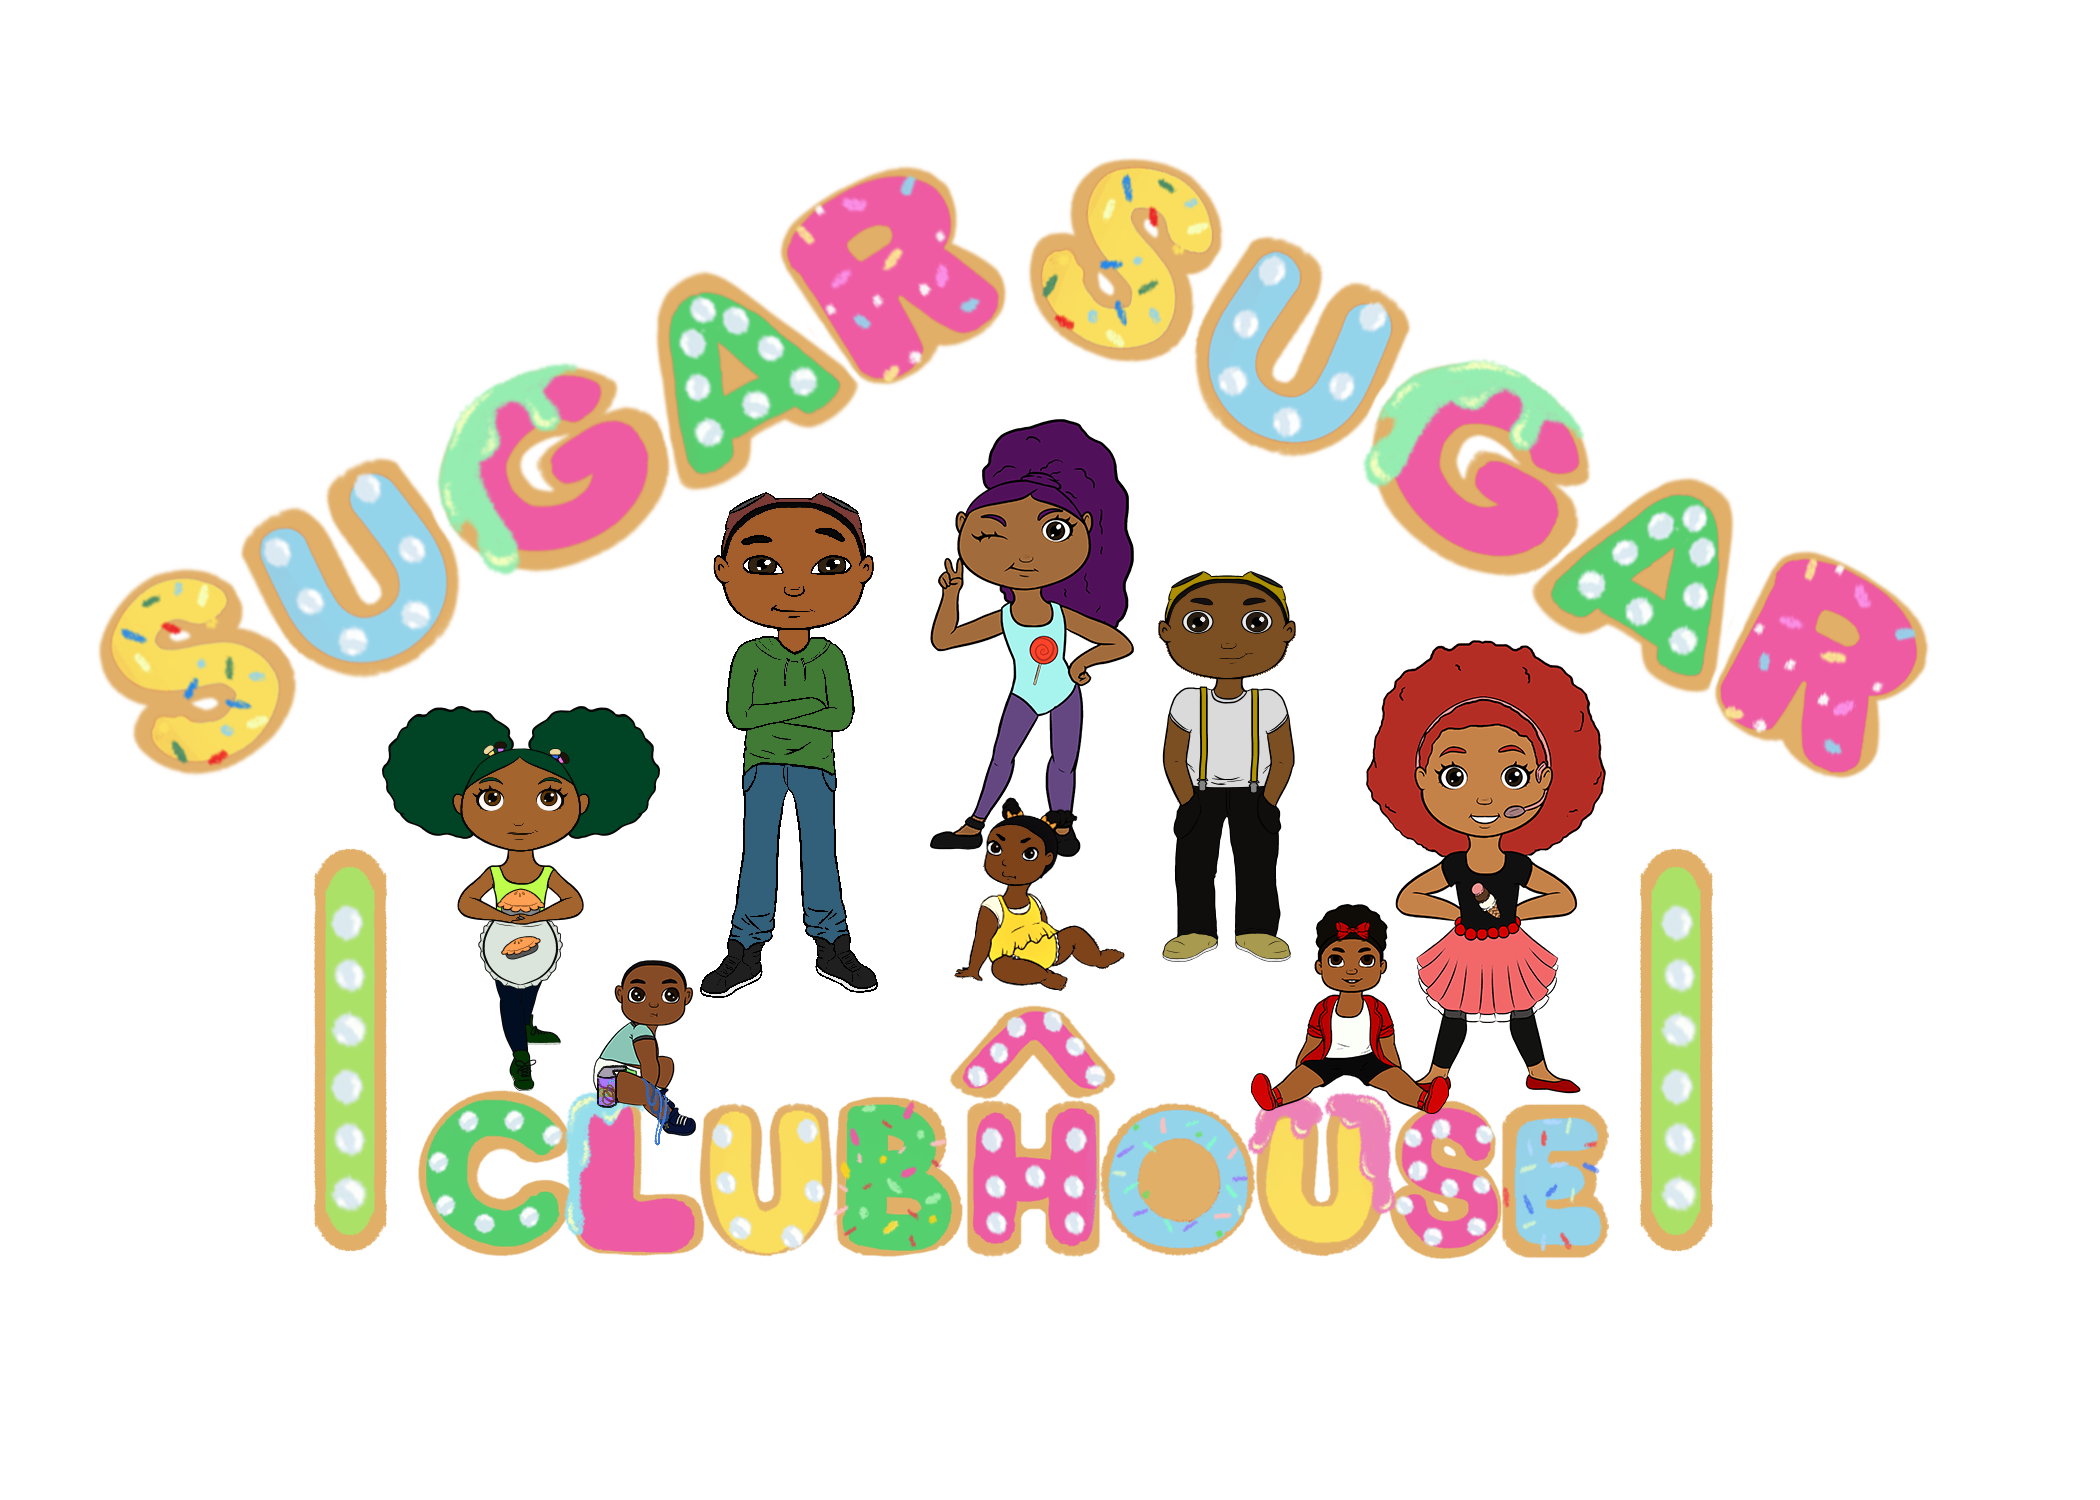 Kid club house clipart clipart free library Sugar Sugar Clubhouse | Not your average clubhouse! clipart free library